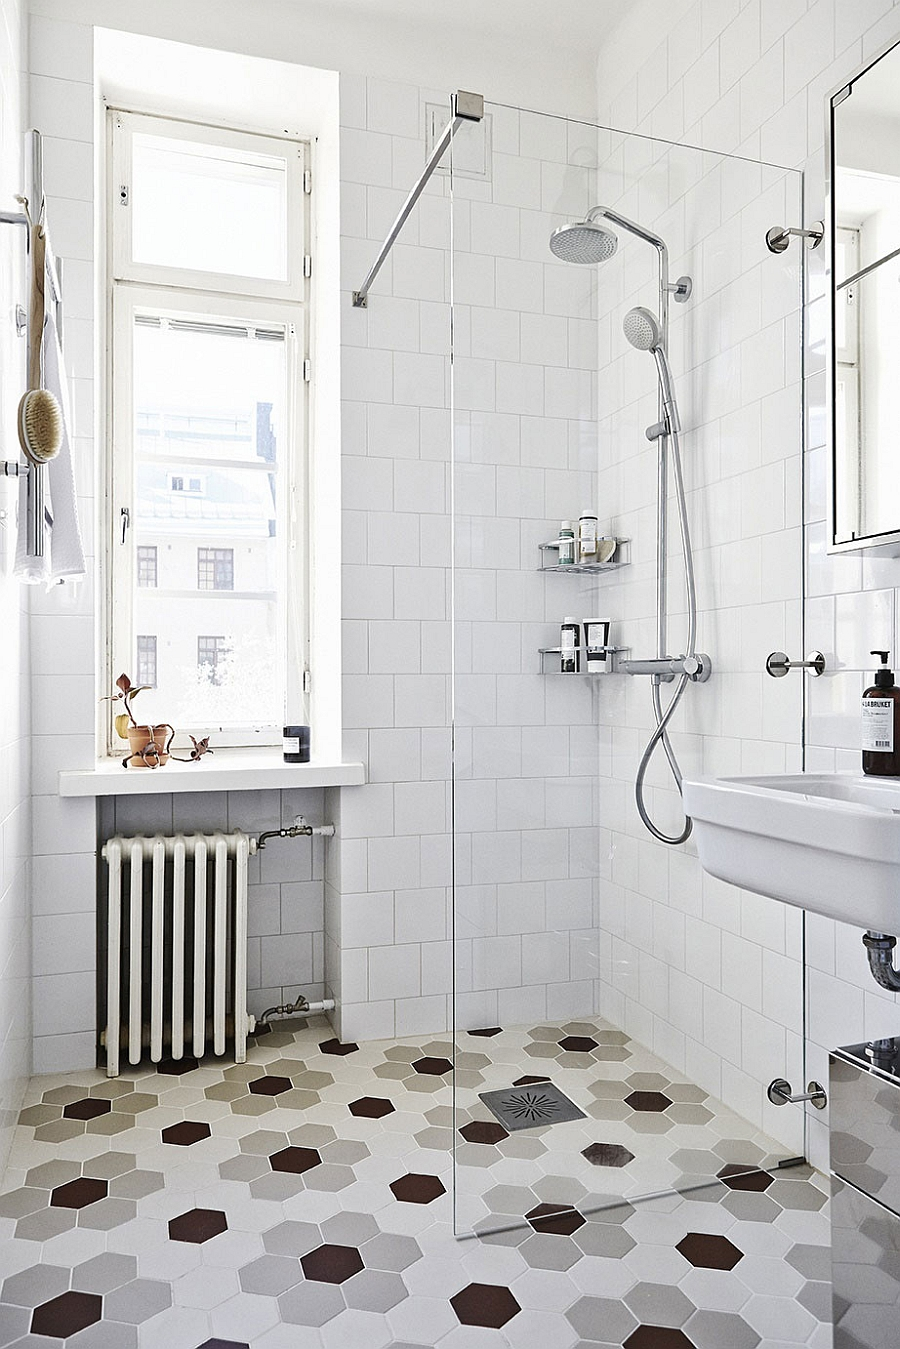 View In Gallery Scandinavian Bathroom Design With Hexagonal Floor Tiles